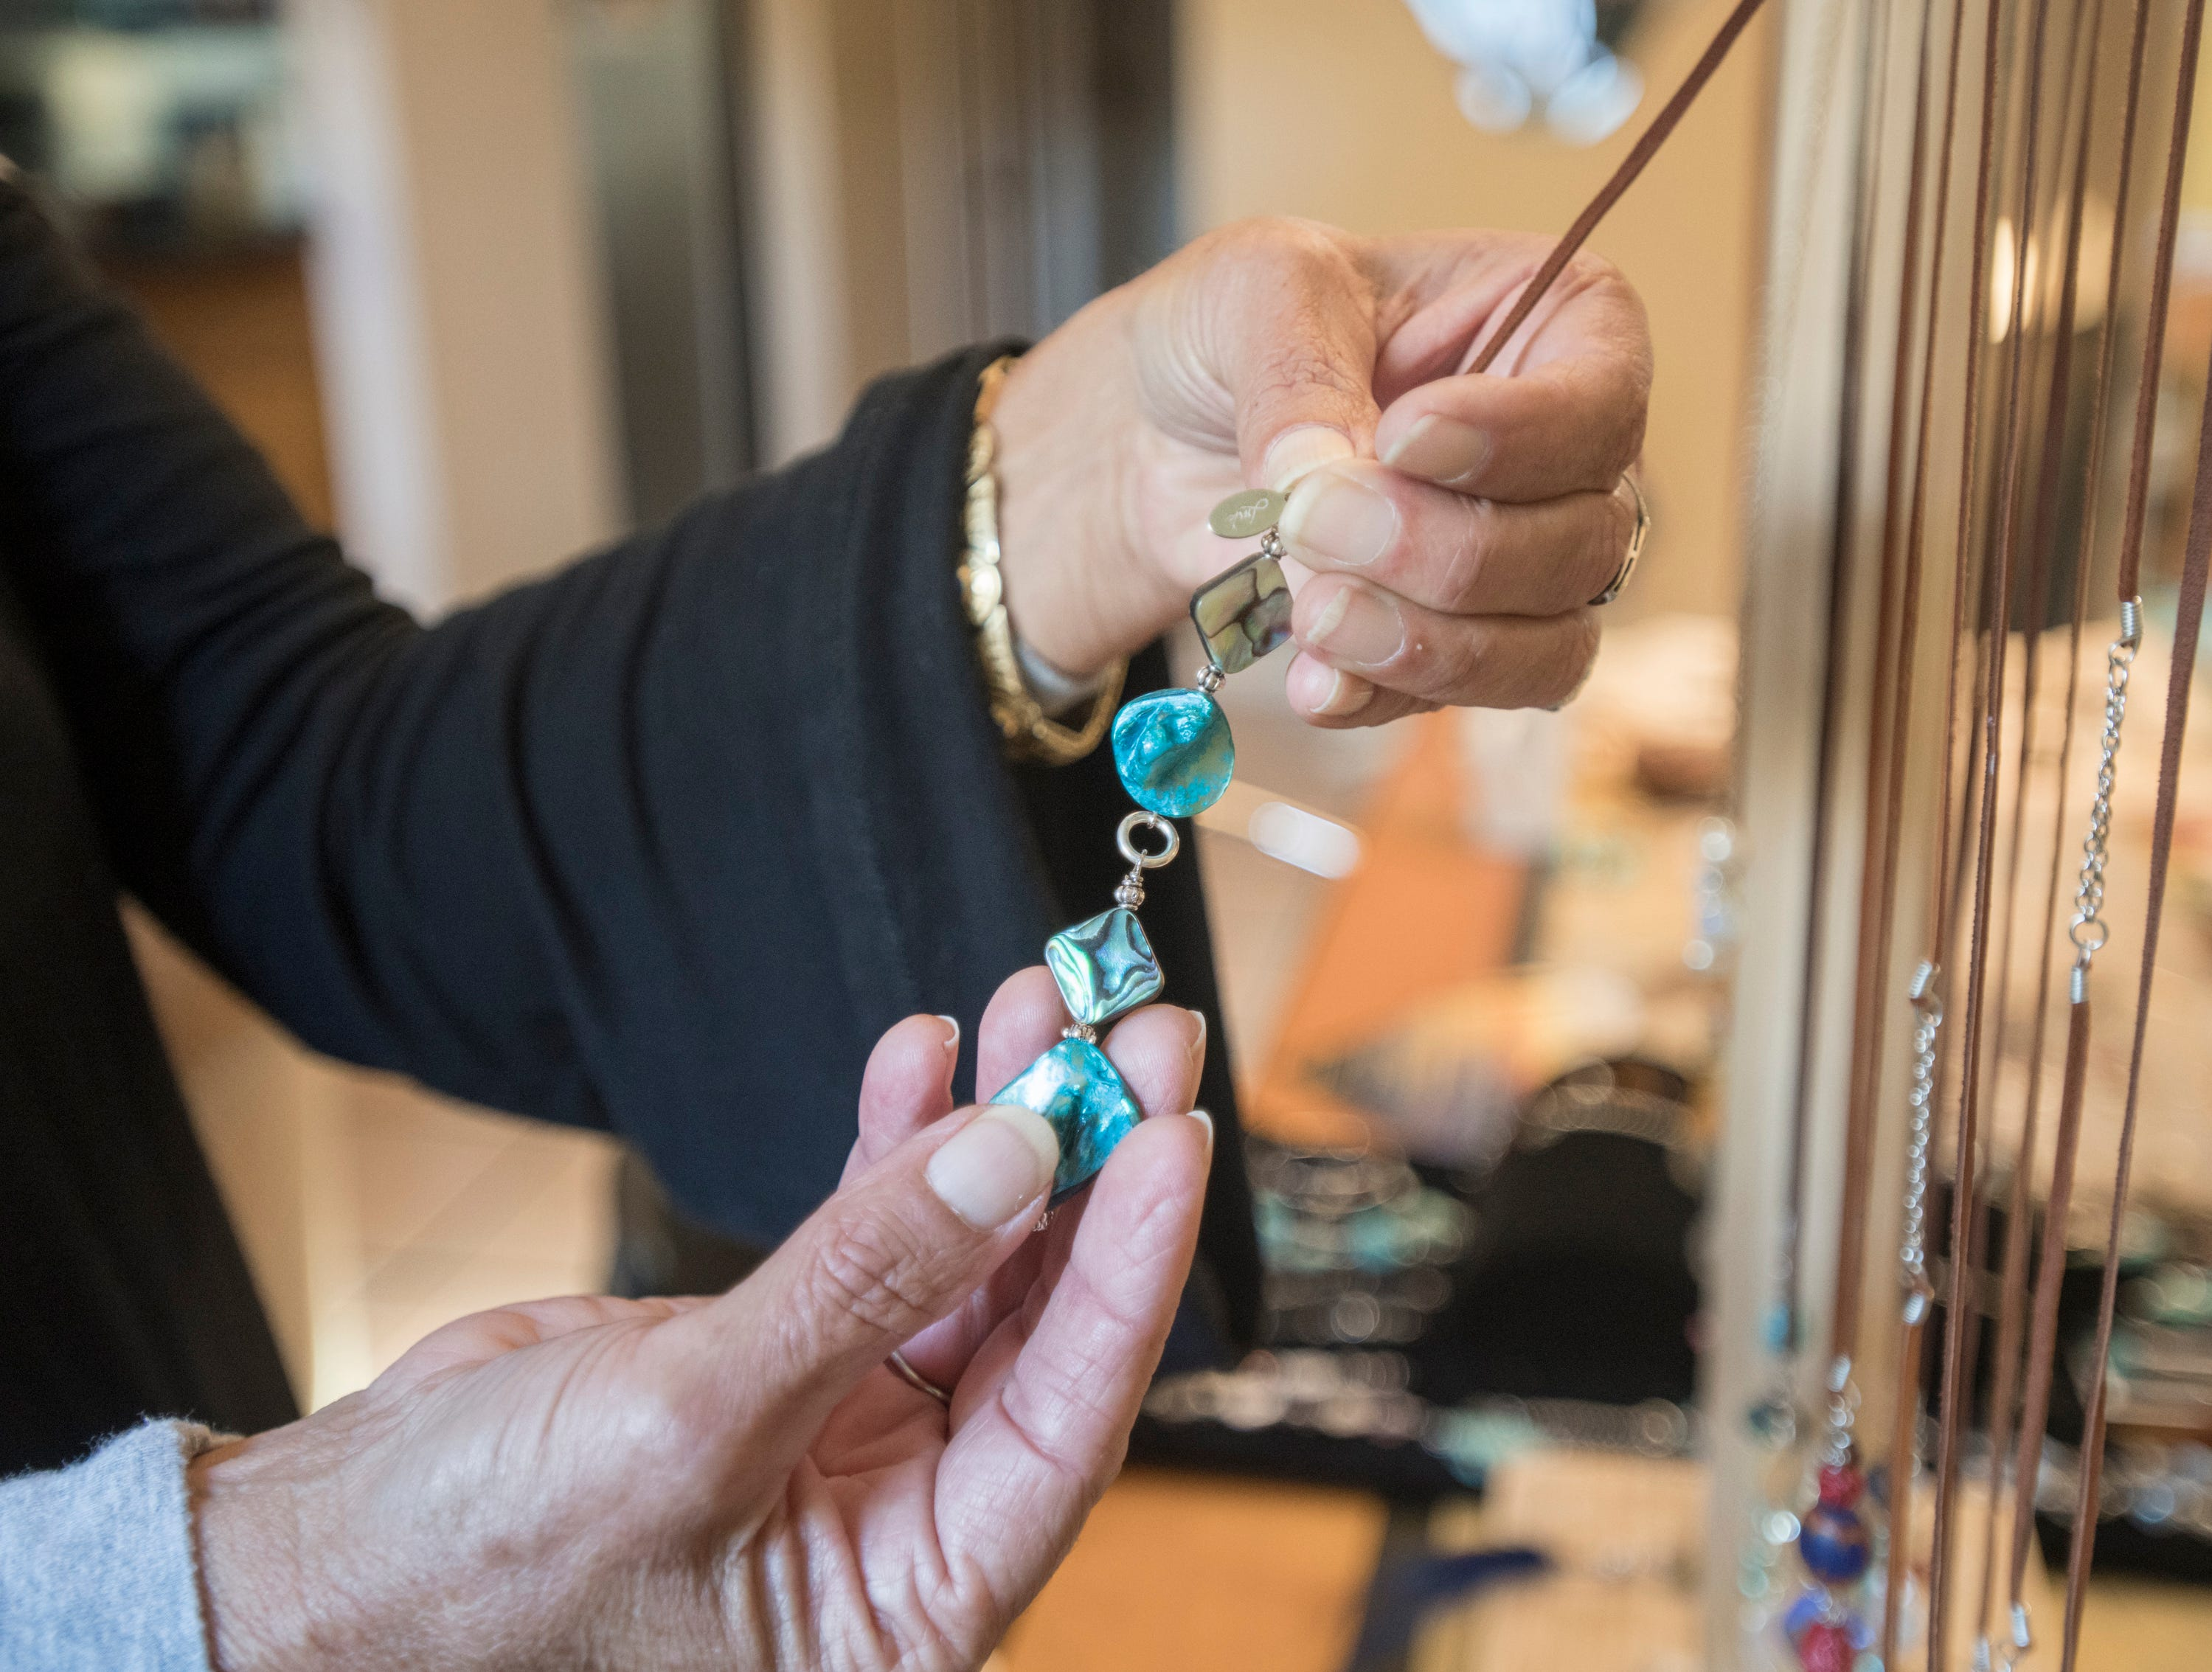 Mary Gentile, co-founder of I Love Me Knot, shows off a piece of jewelry in Gulf Breeze on Wednesday, December 5, 2018.  A portion of their proceeds aids those who have been impacted by suicide while reducing the stigma around mental illness.